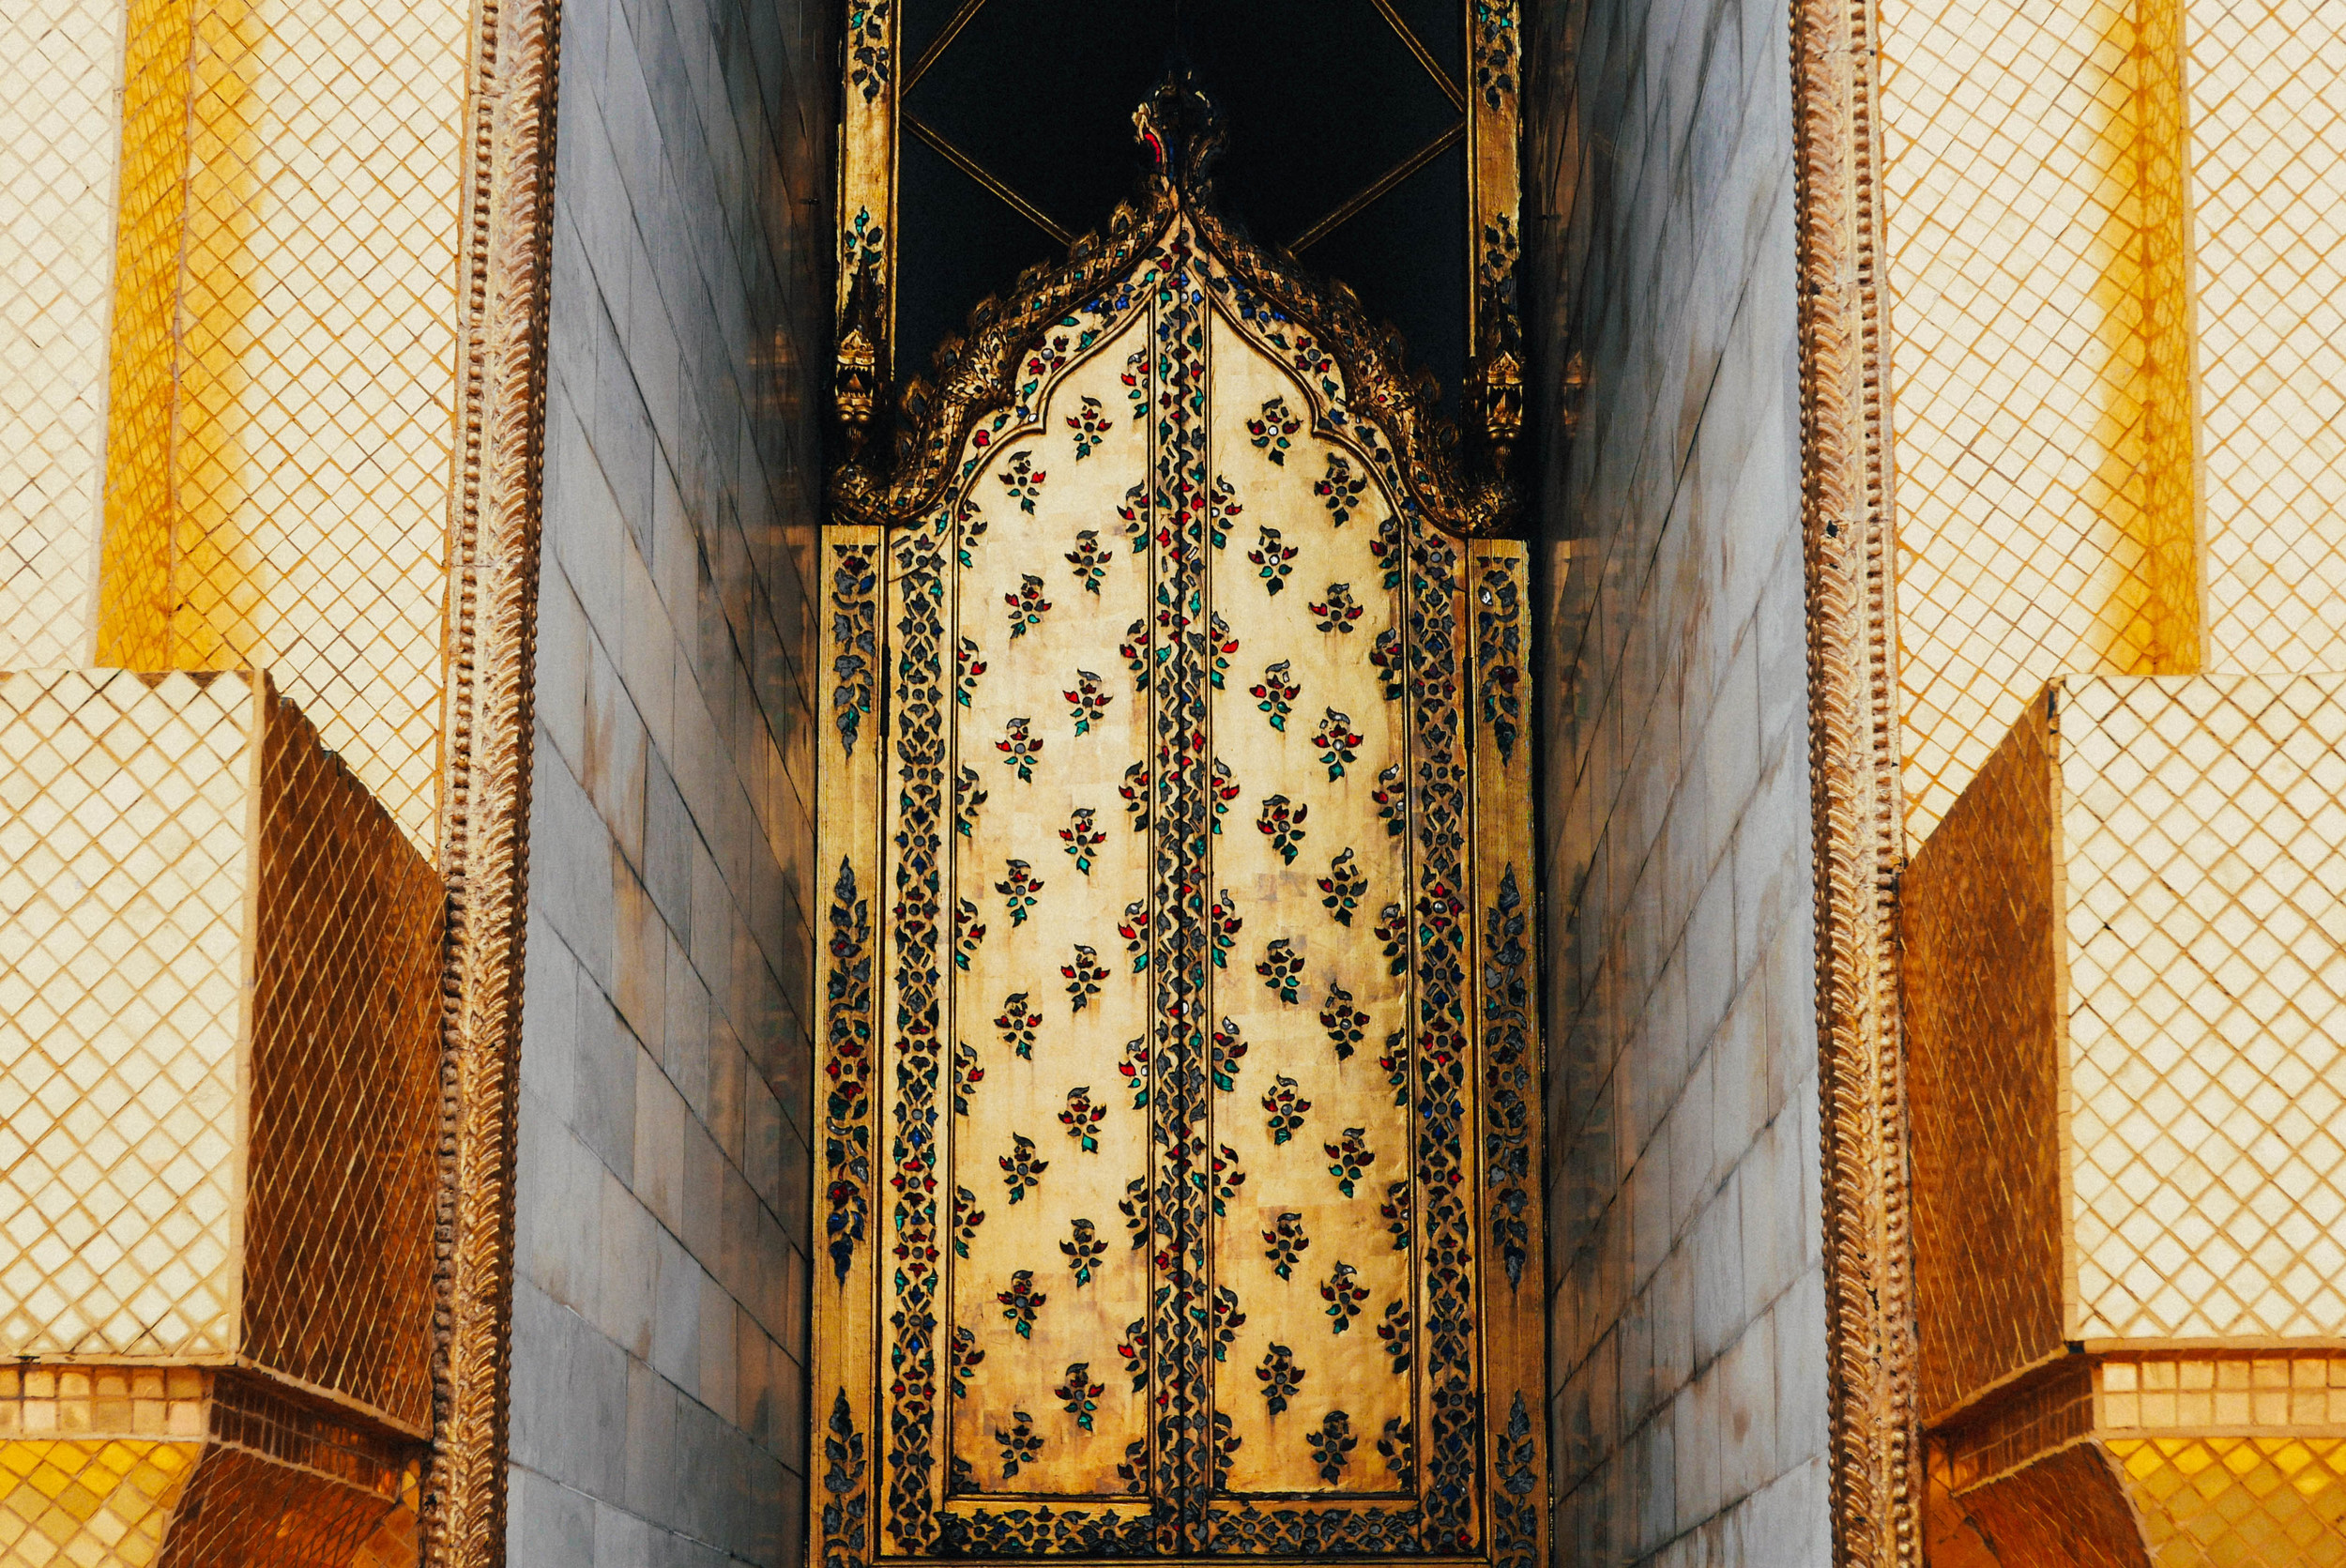 {above: a gilded doorway | below: tile work details; a ceylonese-style pagoda covered in gold mosaic}